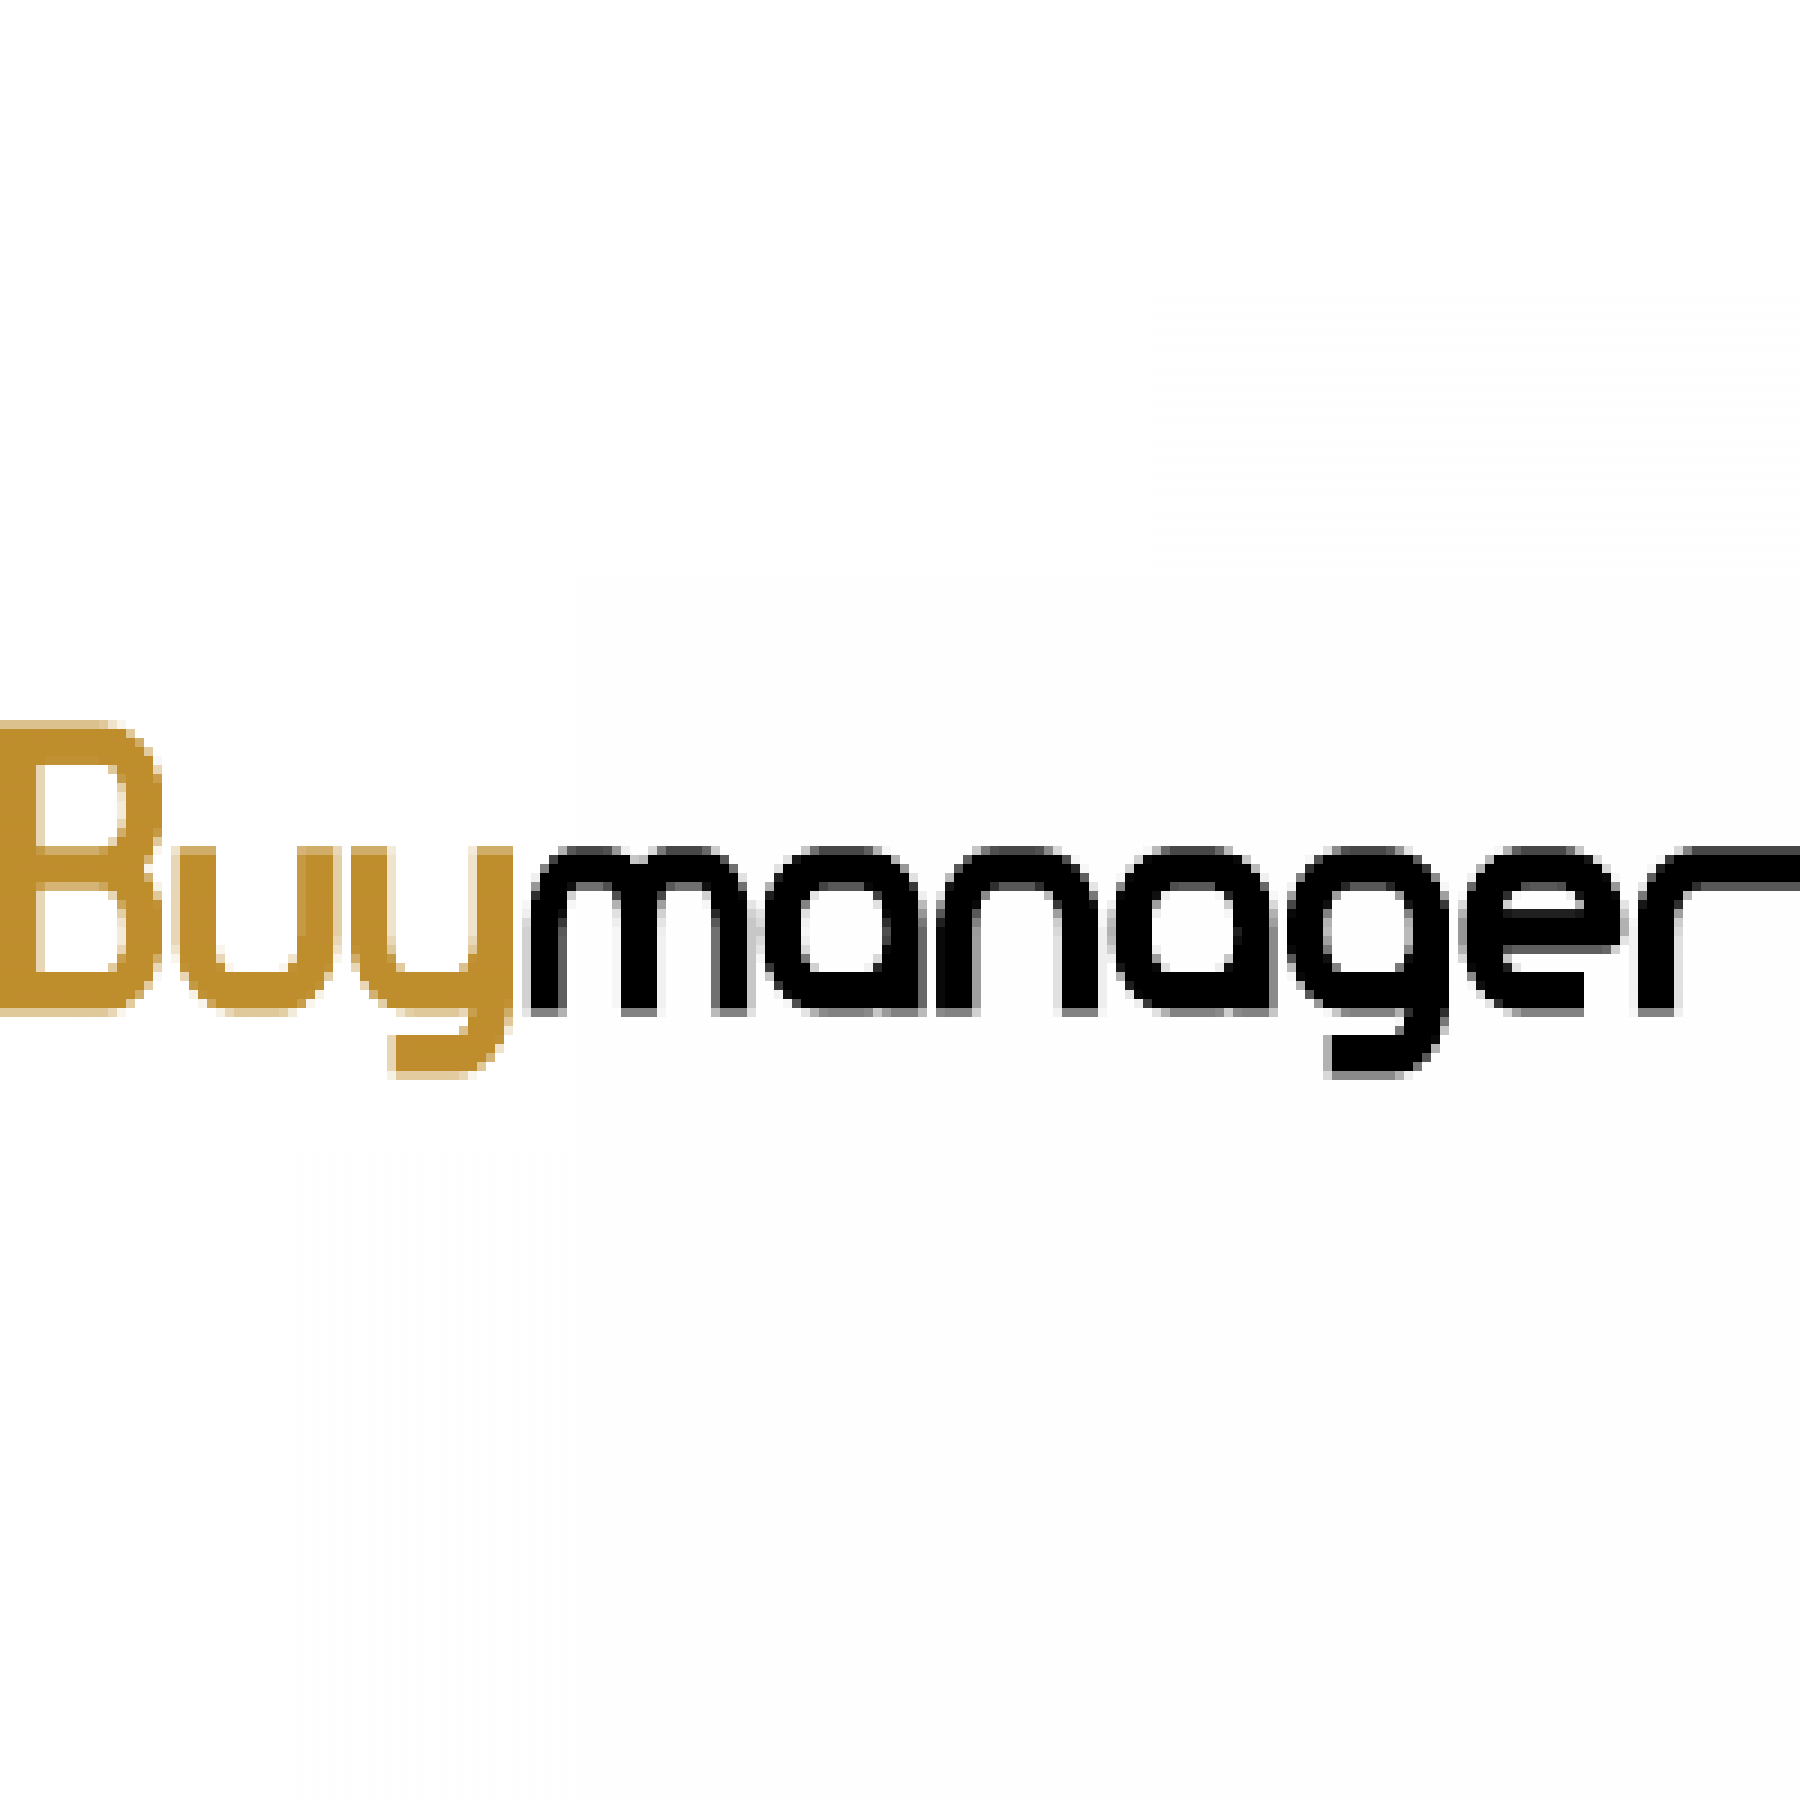 <b>Supplyframe</b> acquires Pertilience, Buymanager software publisher – Levine Keszler advises the shareholders of Pertilience